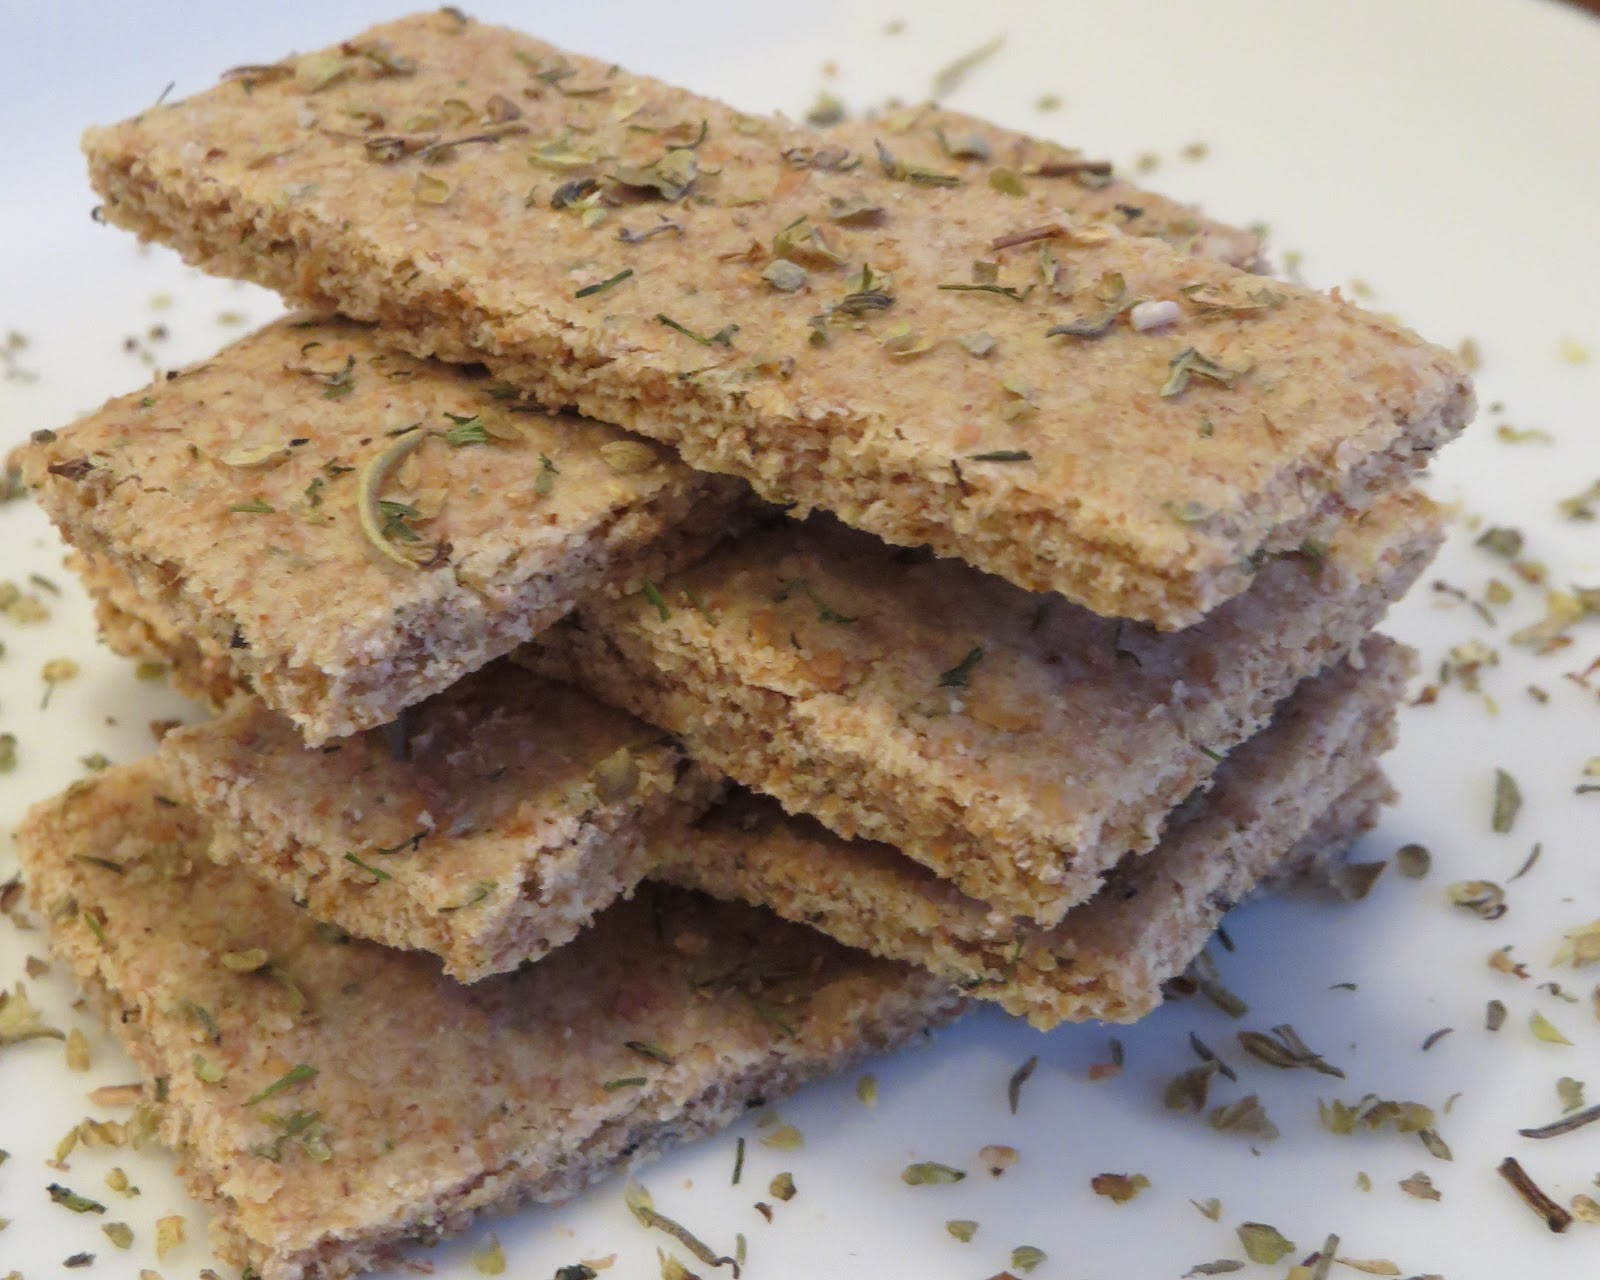 Vegan Cracker Recipes  Bed Stuy Foo Homemade Vegan Cracker Recipe